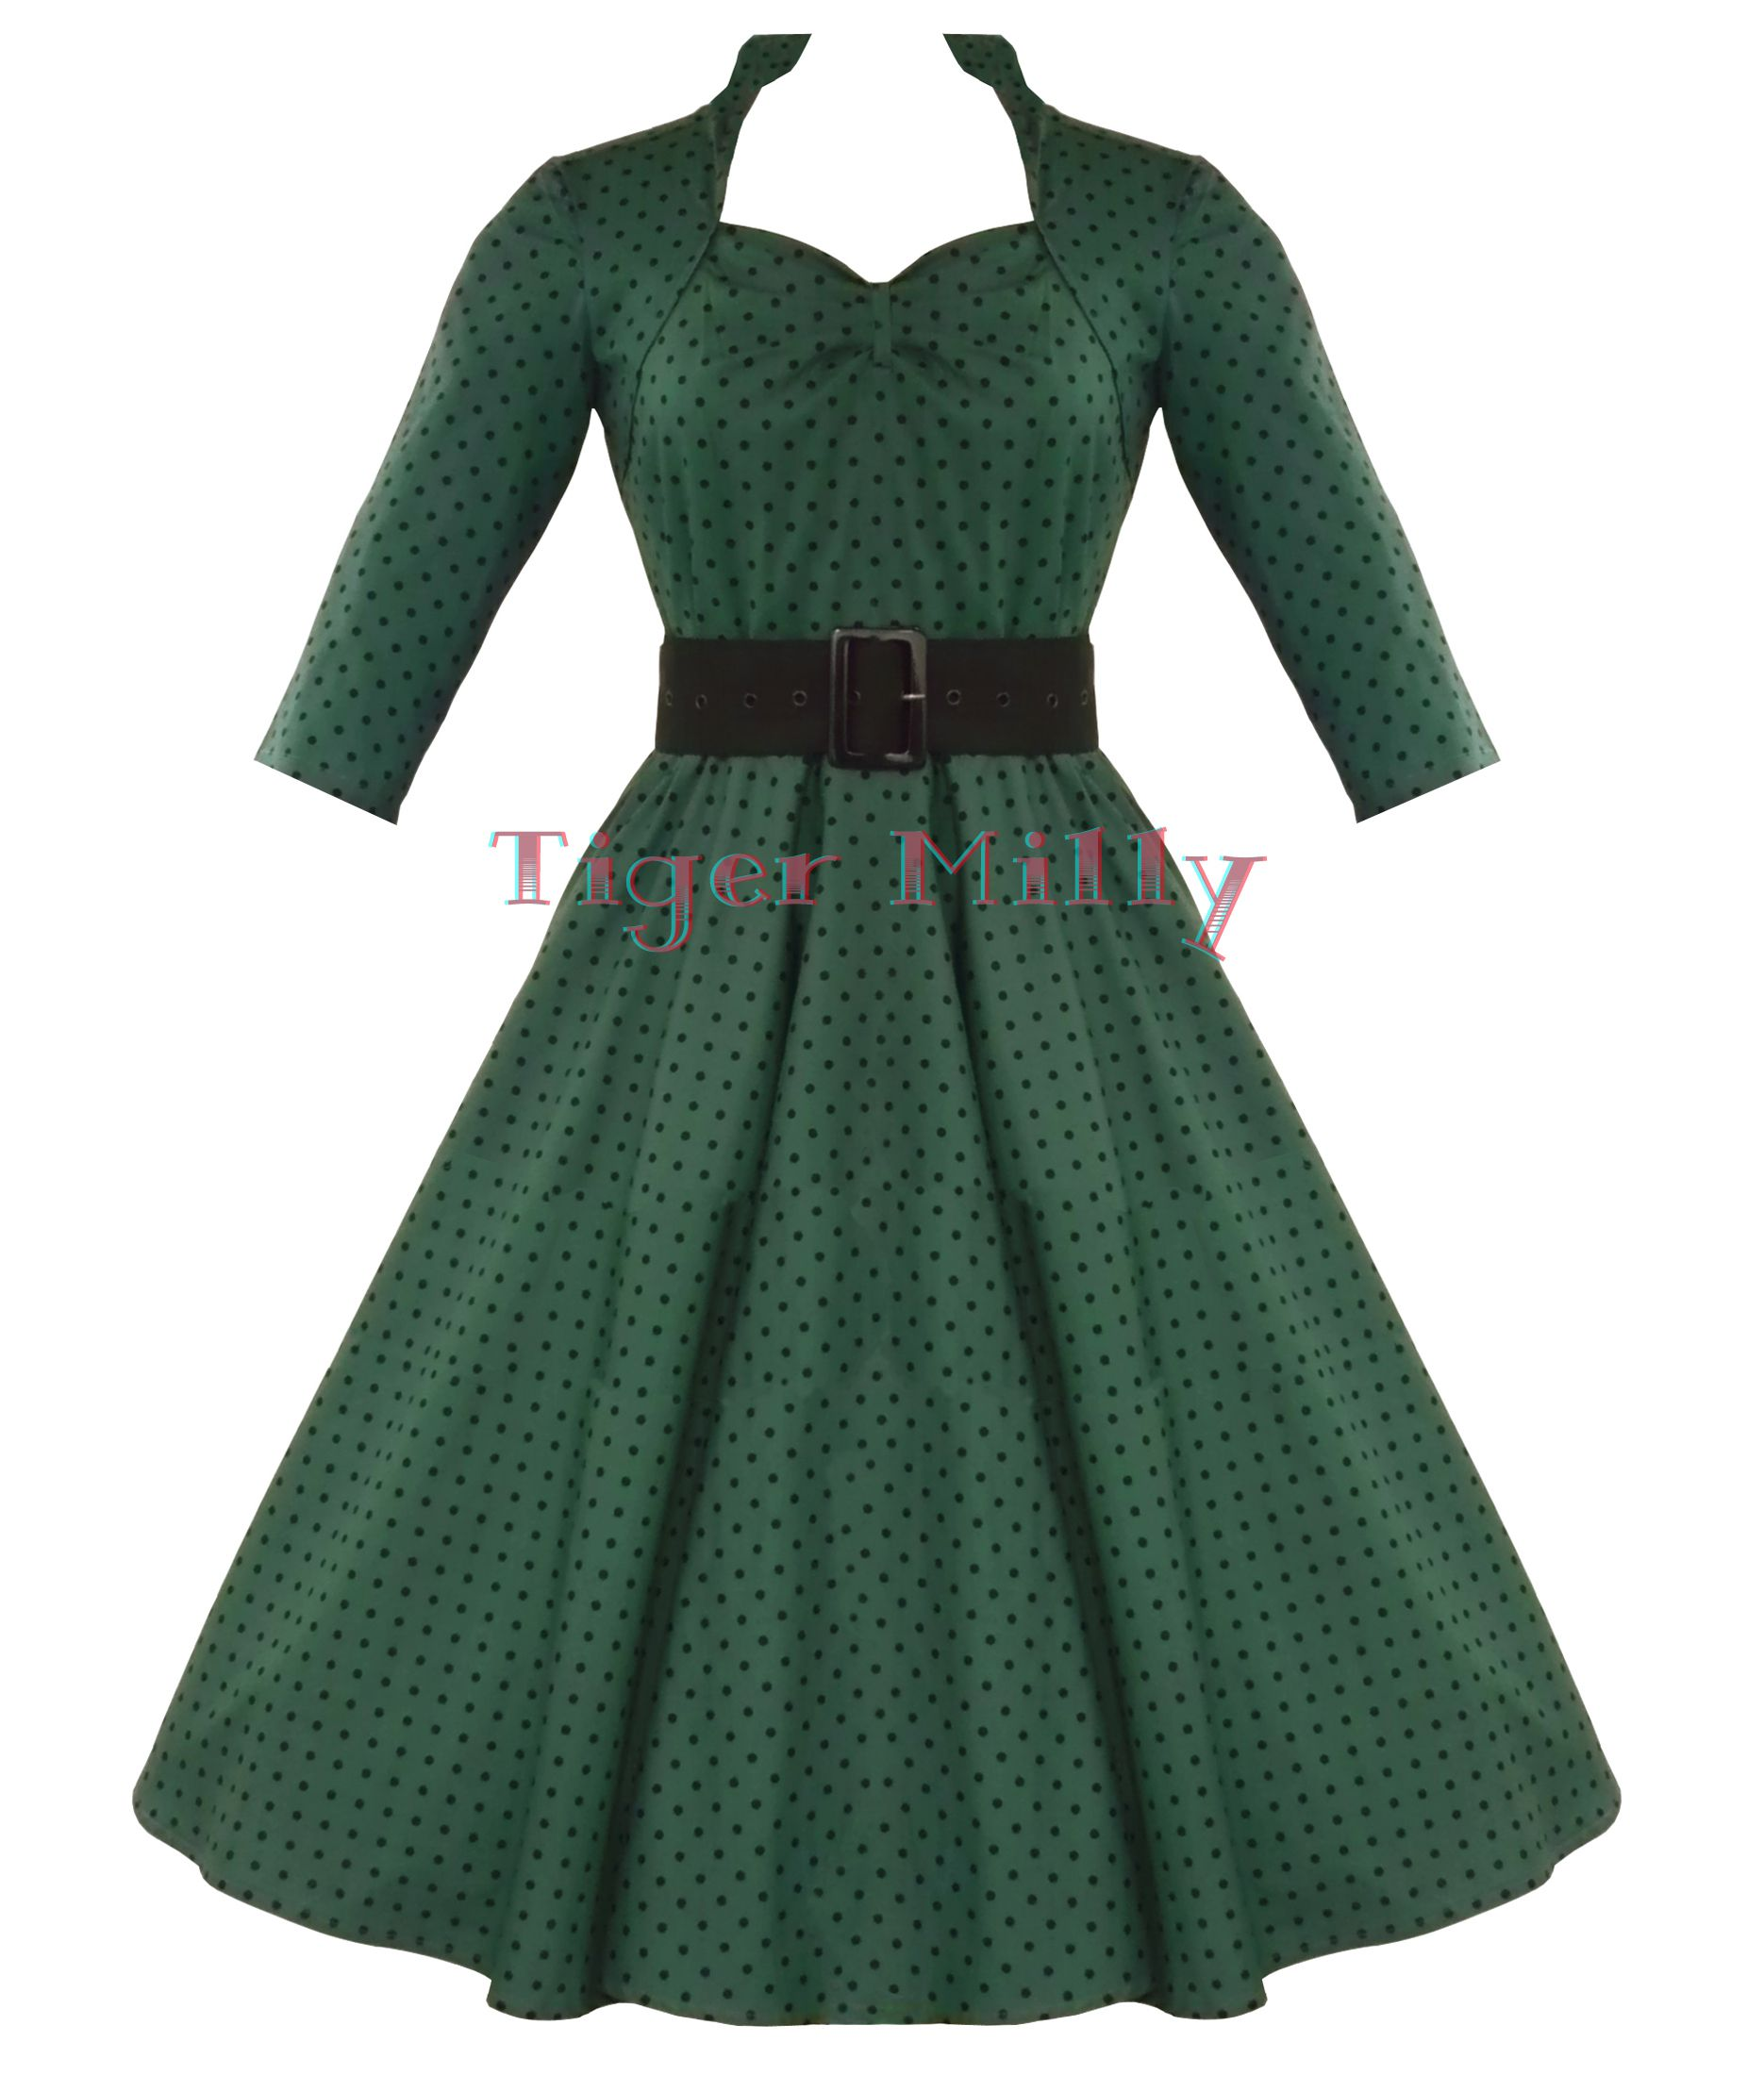 HELL BUNNY 50's rockabilly MOMO vintage polka dot DRESS GREEN